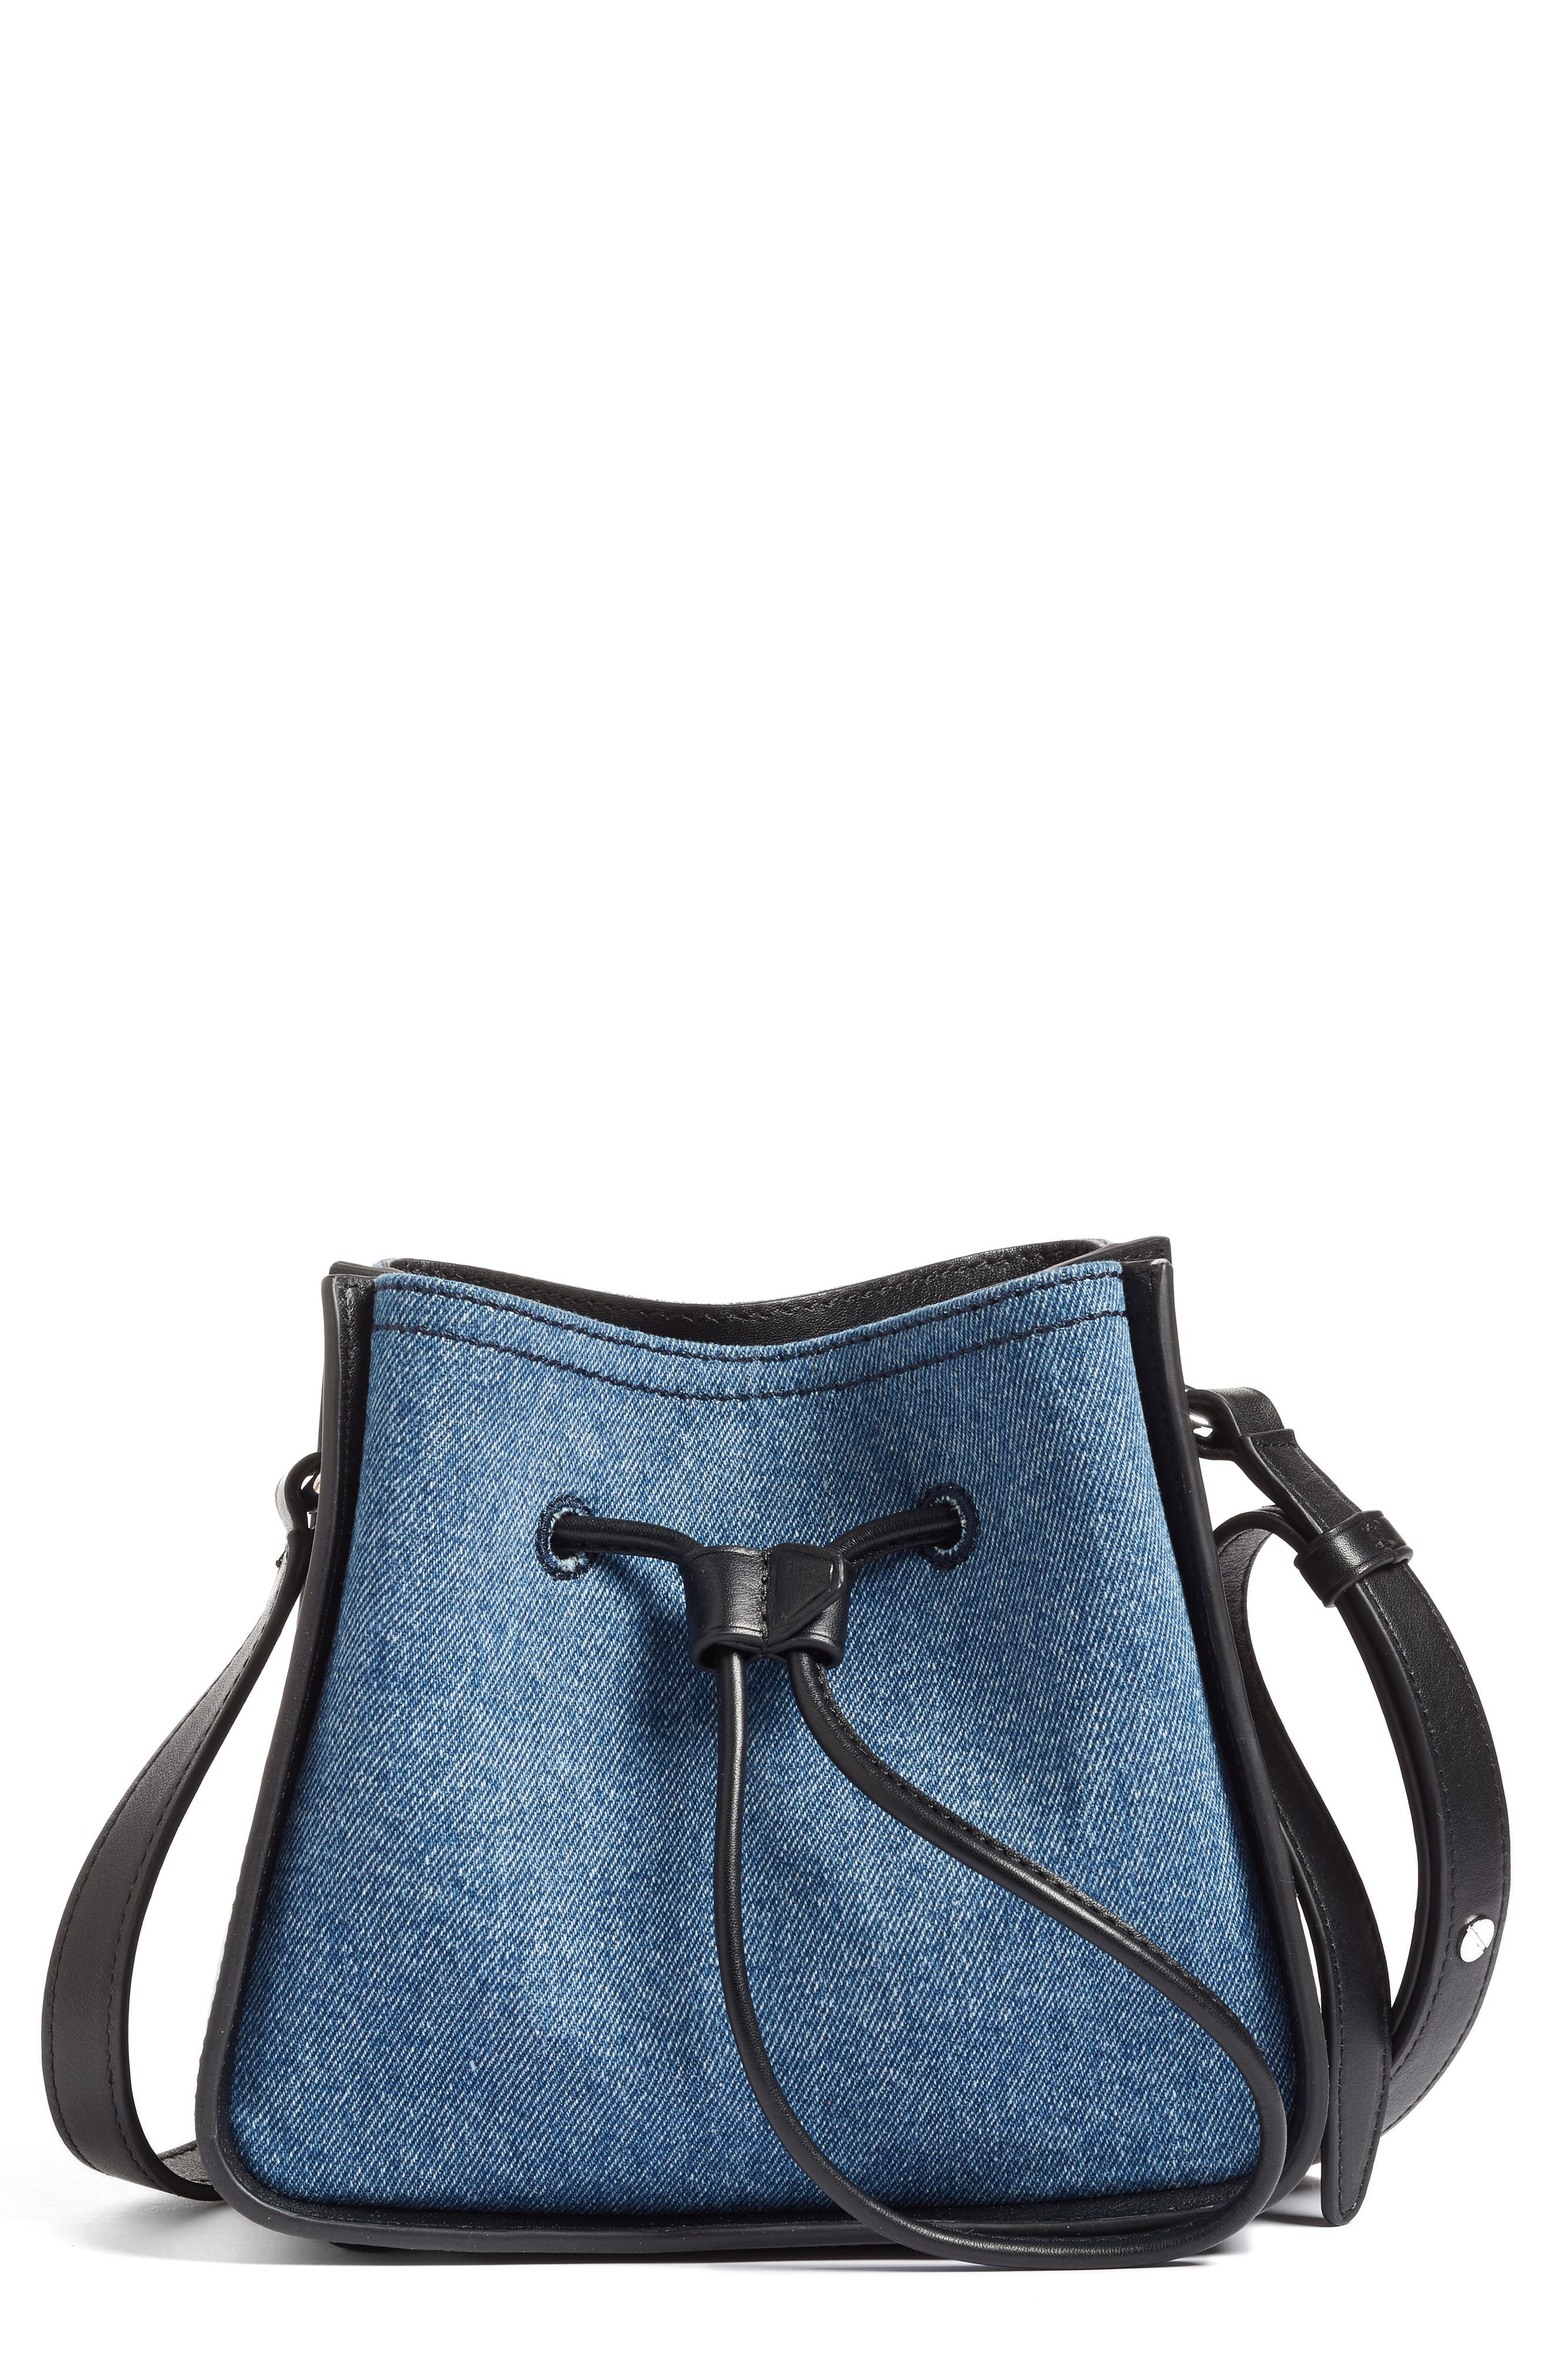 3.1 PHILLIP LIM Mini Soleil Denim & Leather